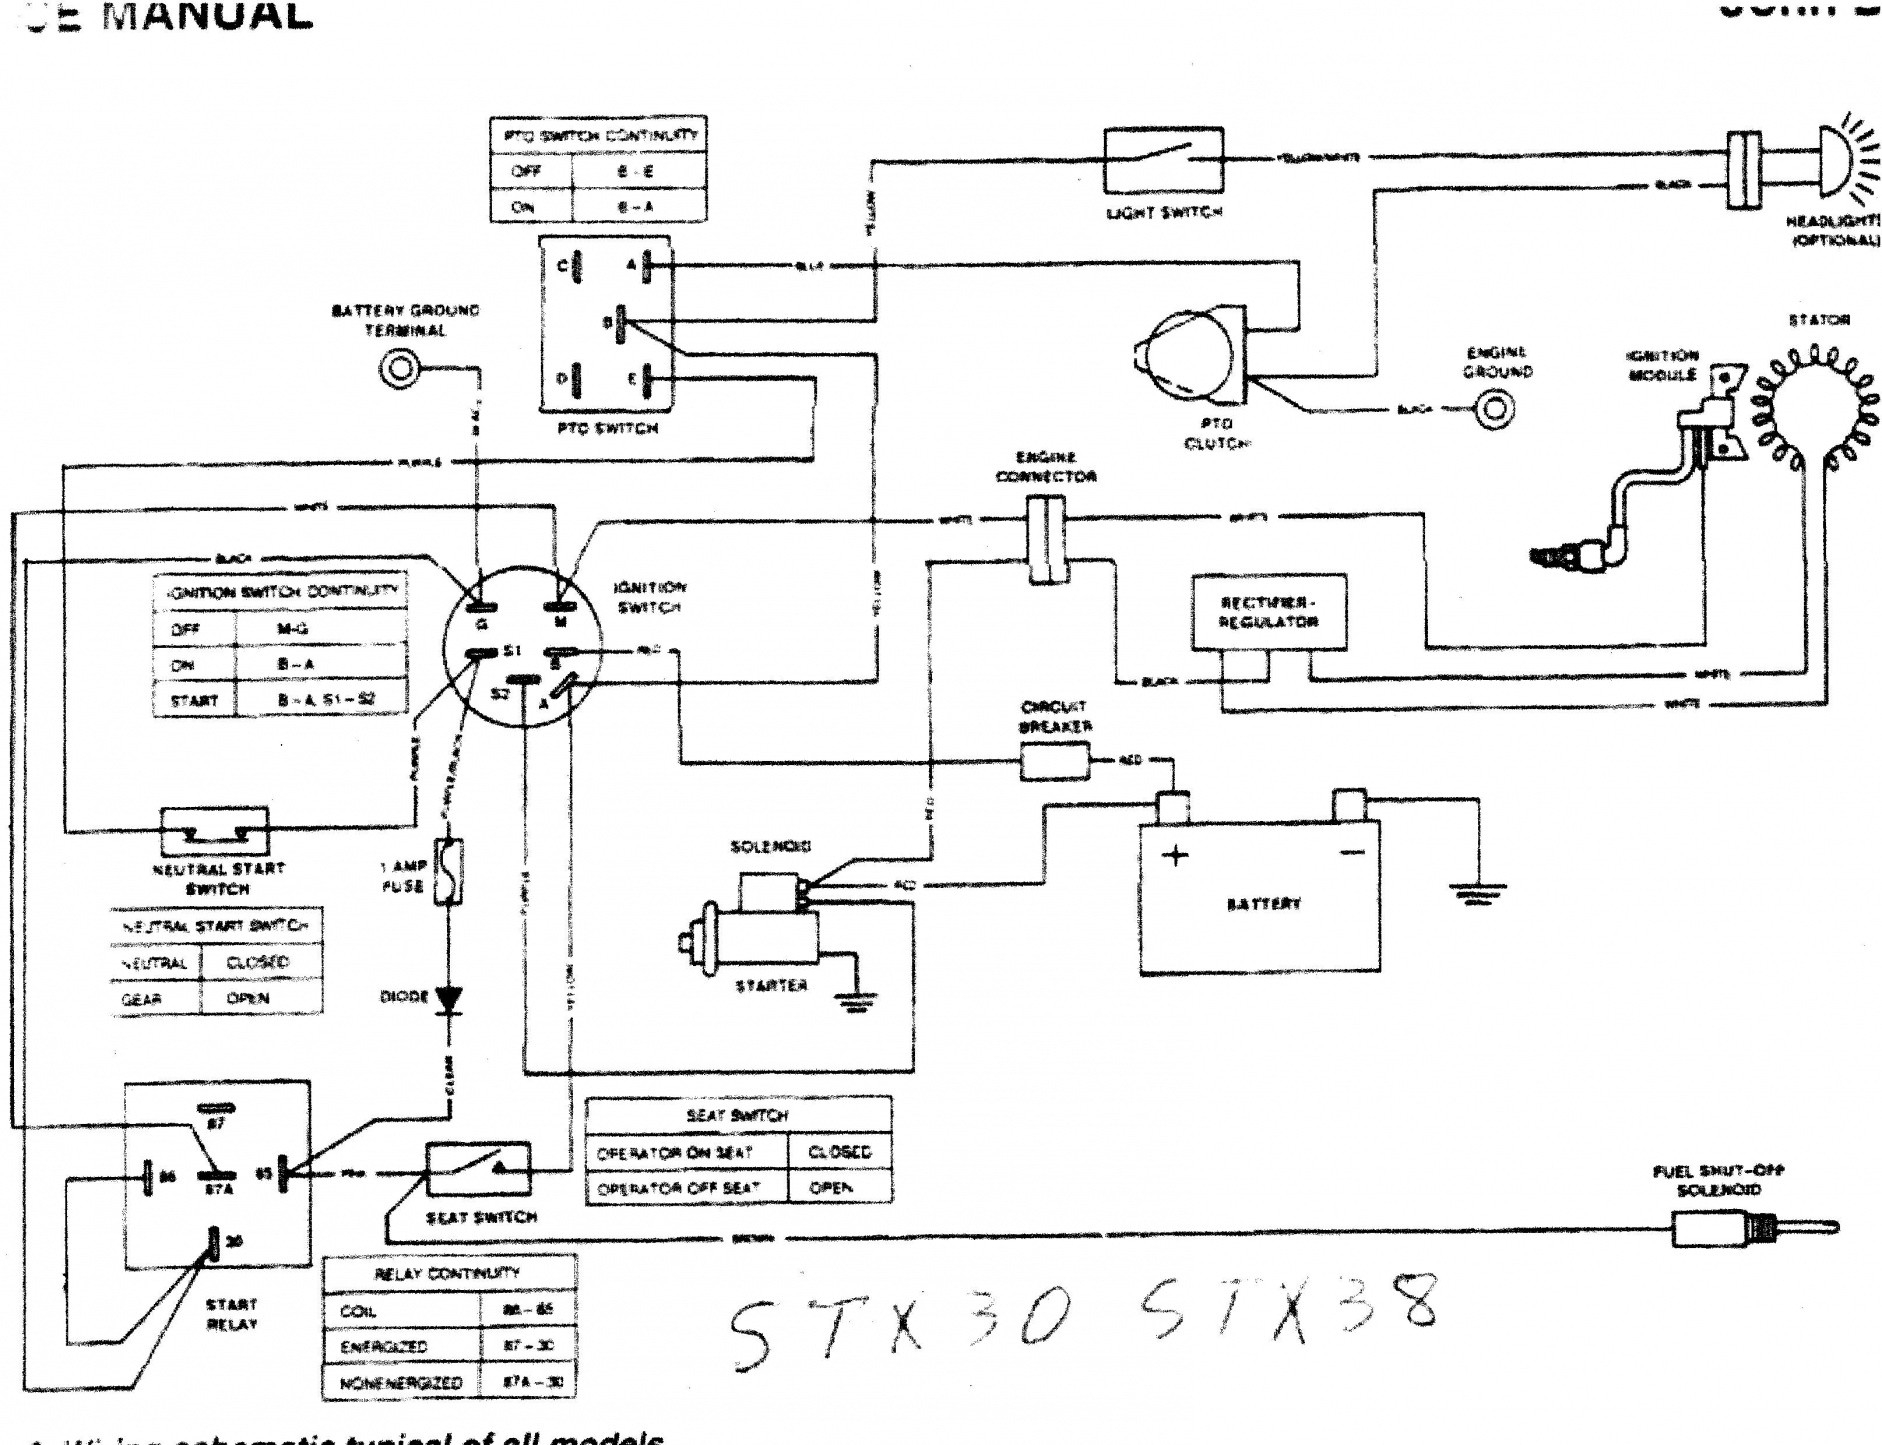 wiring diagram for a john deere 4430 wiring diagram posjd wiring diagram wiring diagram page wiring